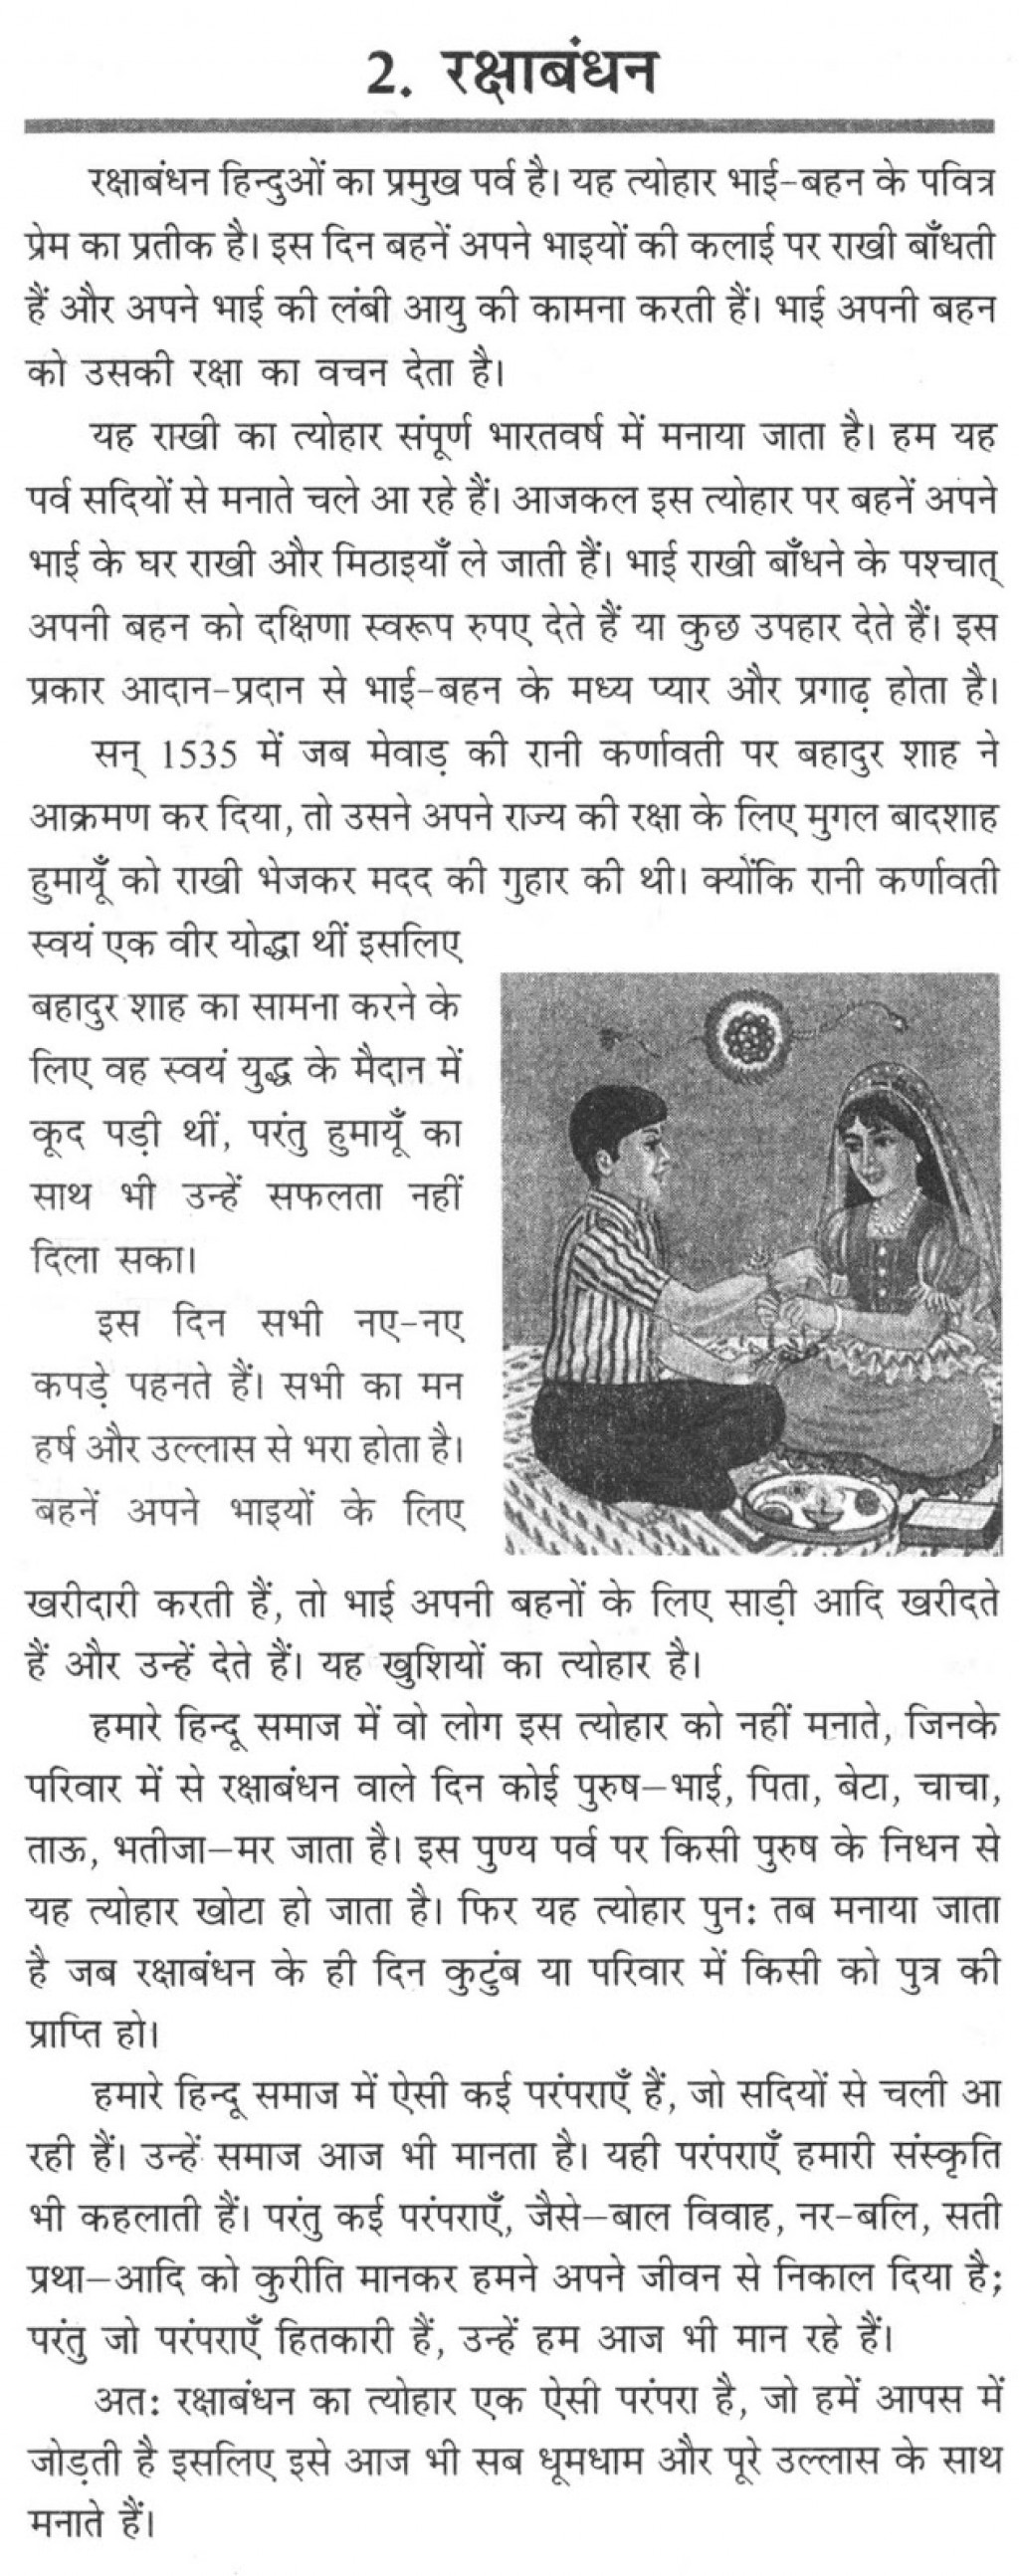 015 Raksha20bandhan20essay20in20hindi202016 Essay Example Good Habits In Exceptional Hindi Food Habit Large